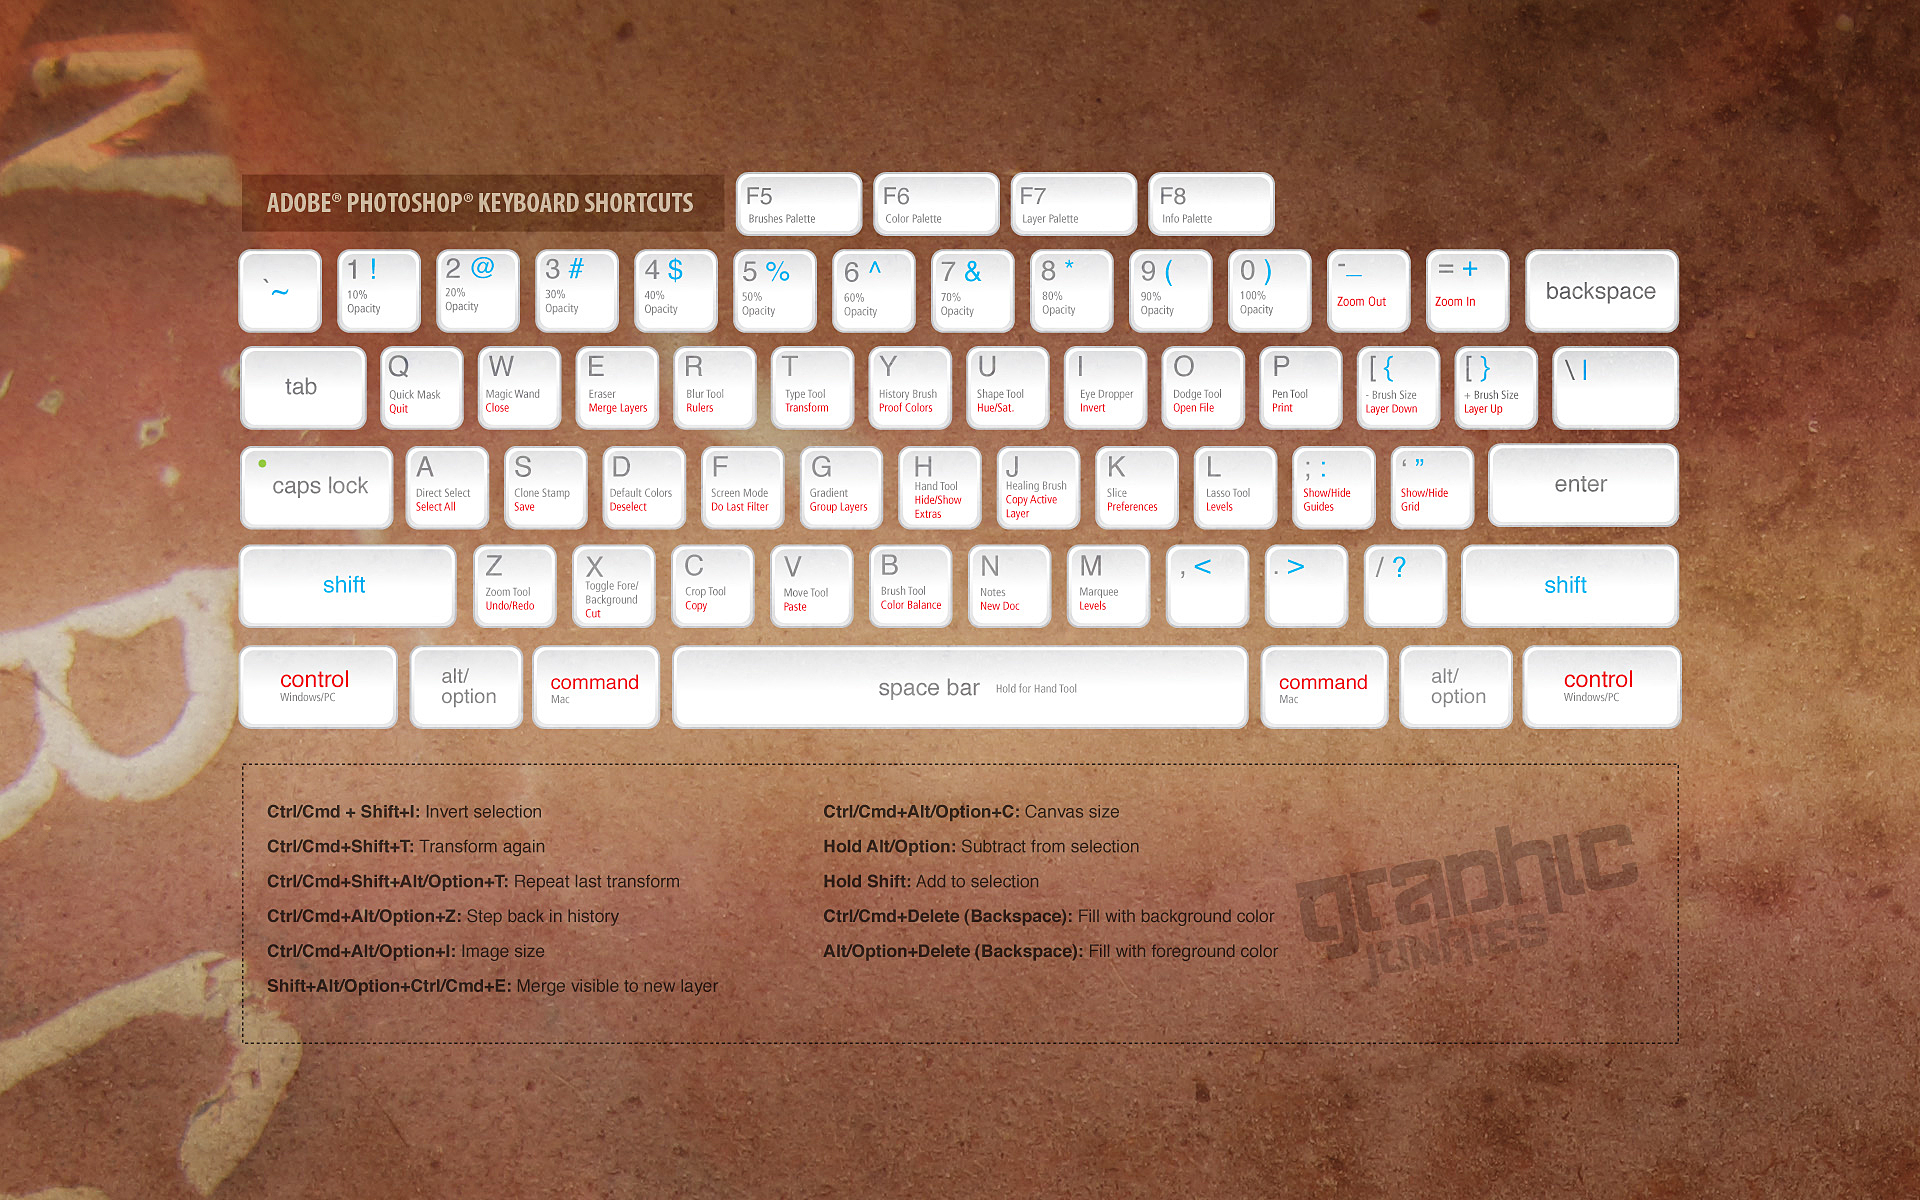 hight resolution of abode photoshop keyboard shortcuts keys diagram detailed poster canvas diy wall sticker home bar posters decoration gift